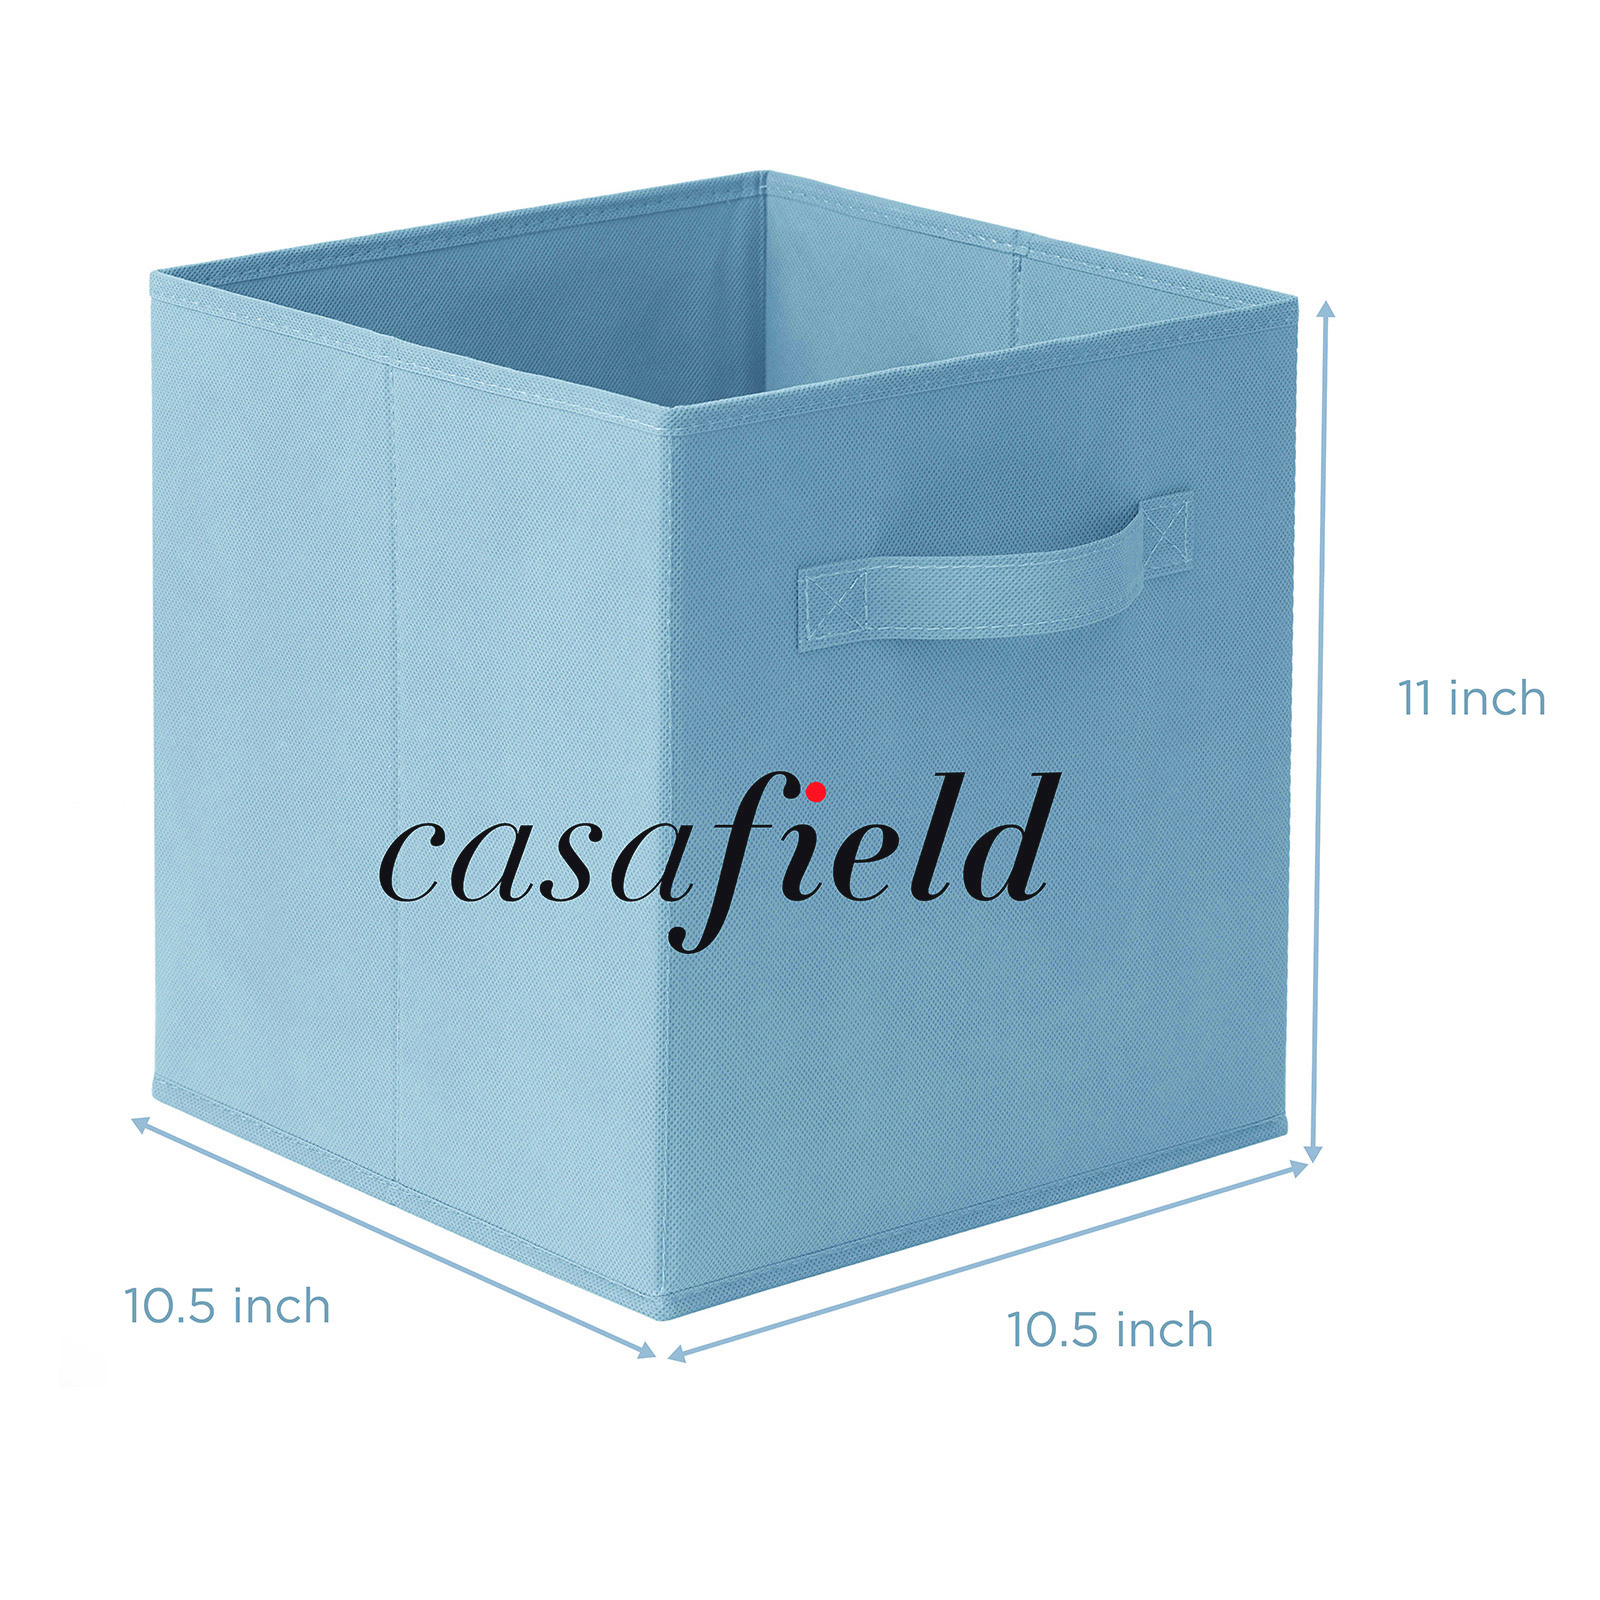 6-Collapsible-Foldable-Cloth-Fabric-Cubby-Cube-Storage-Bins-Baskets-for-Shelves thumbnail 8